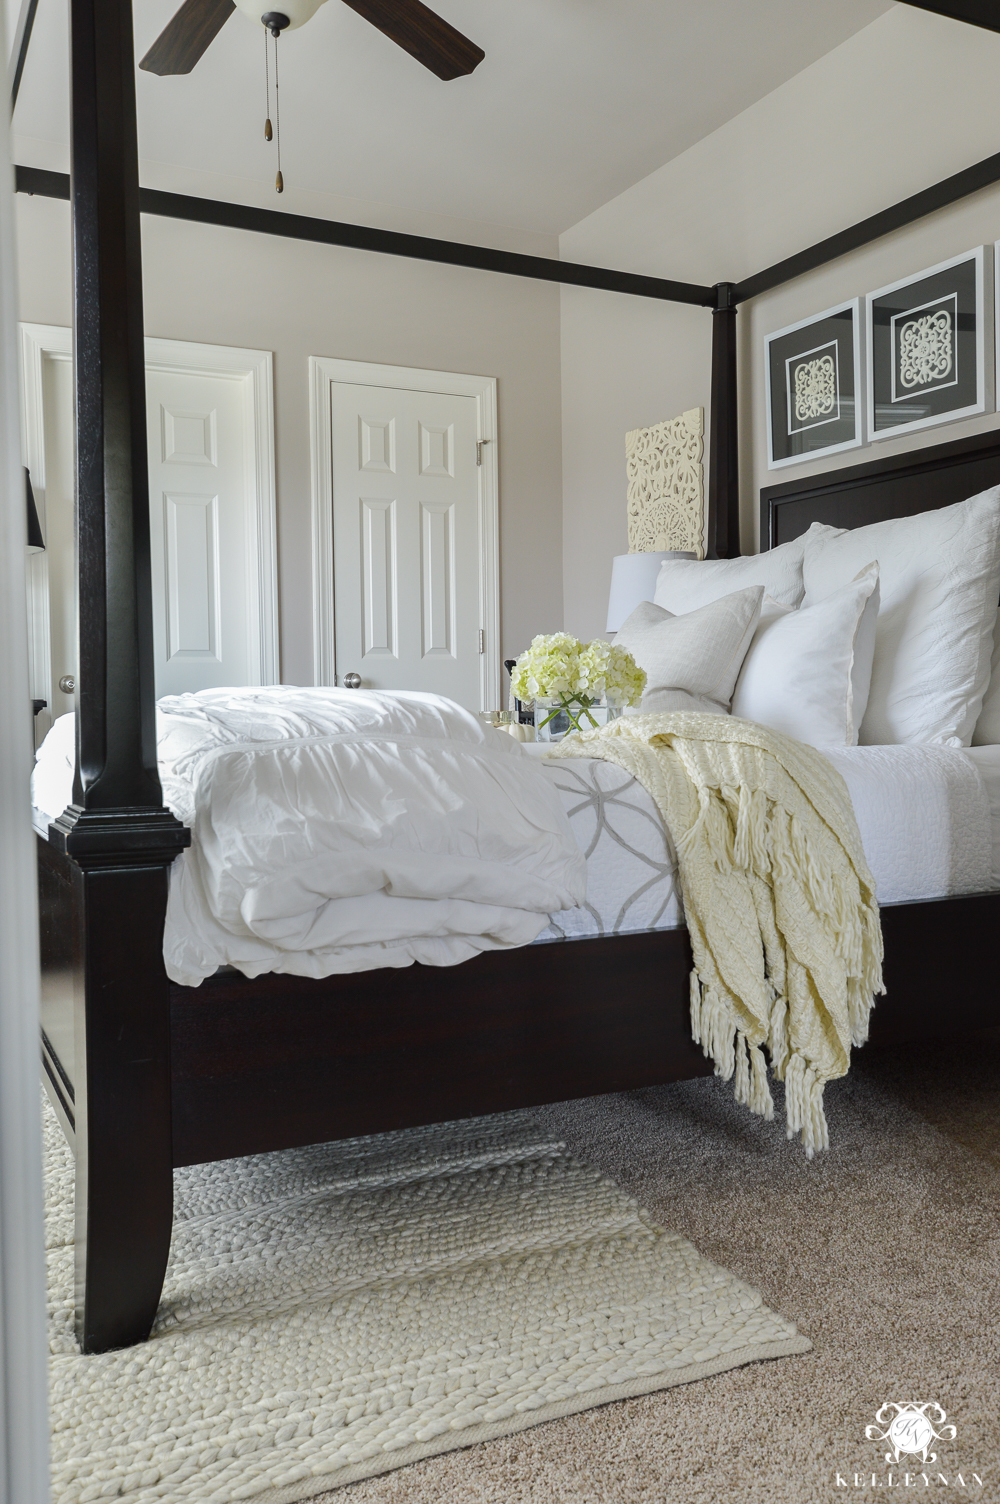 Why Rugs Should Be Layered On Carpet- black canopy bed